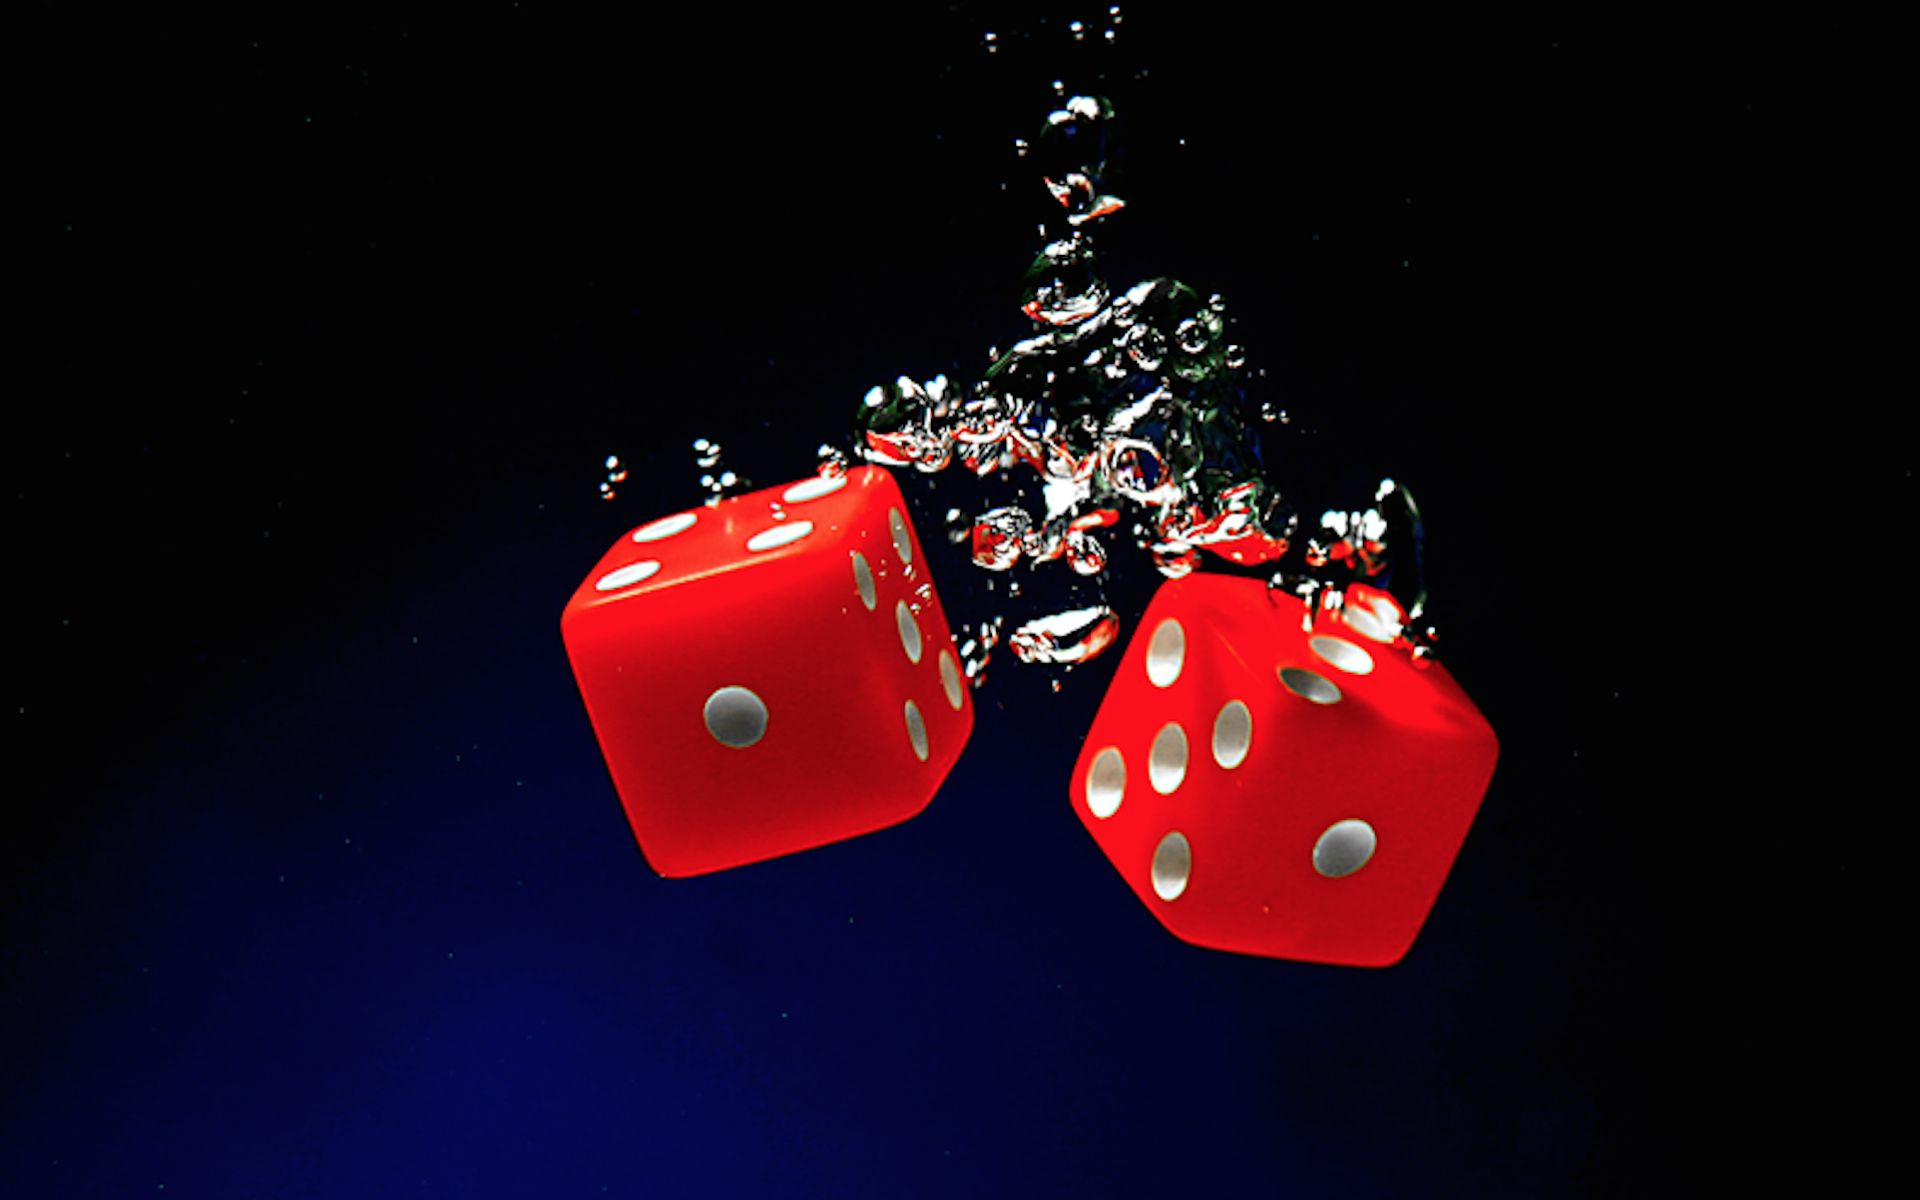 Lucky Red Dice Artwork 3d Wallpaper Abstract